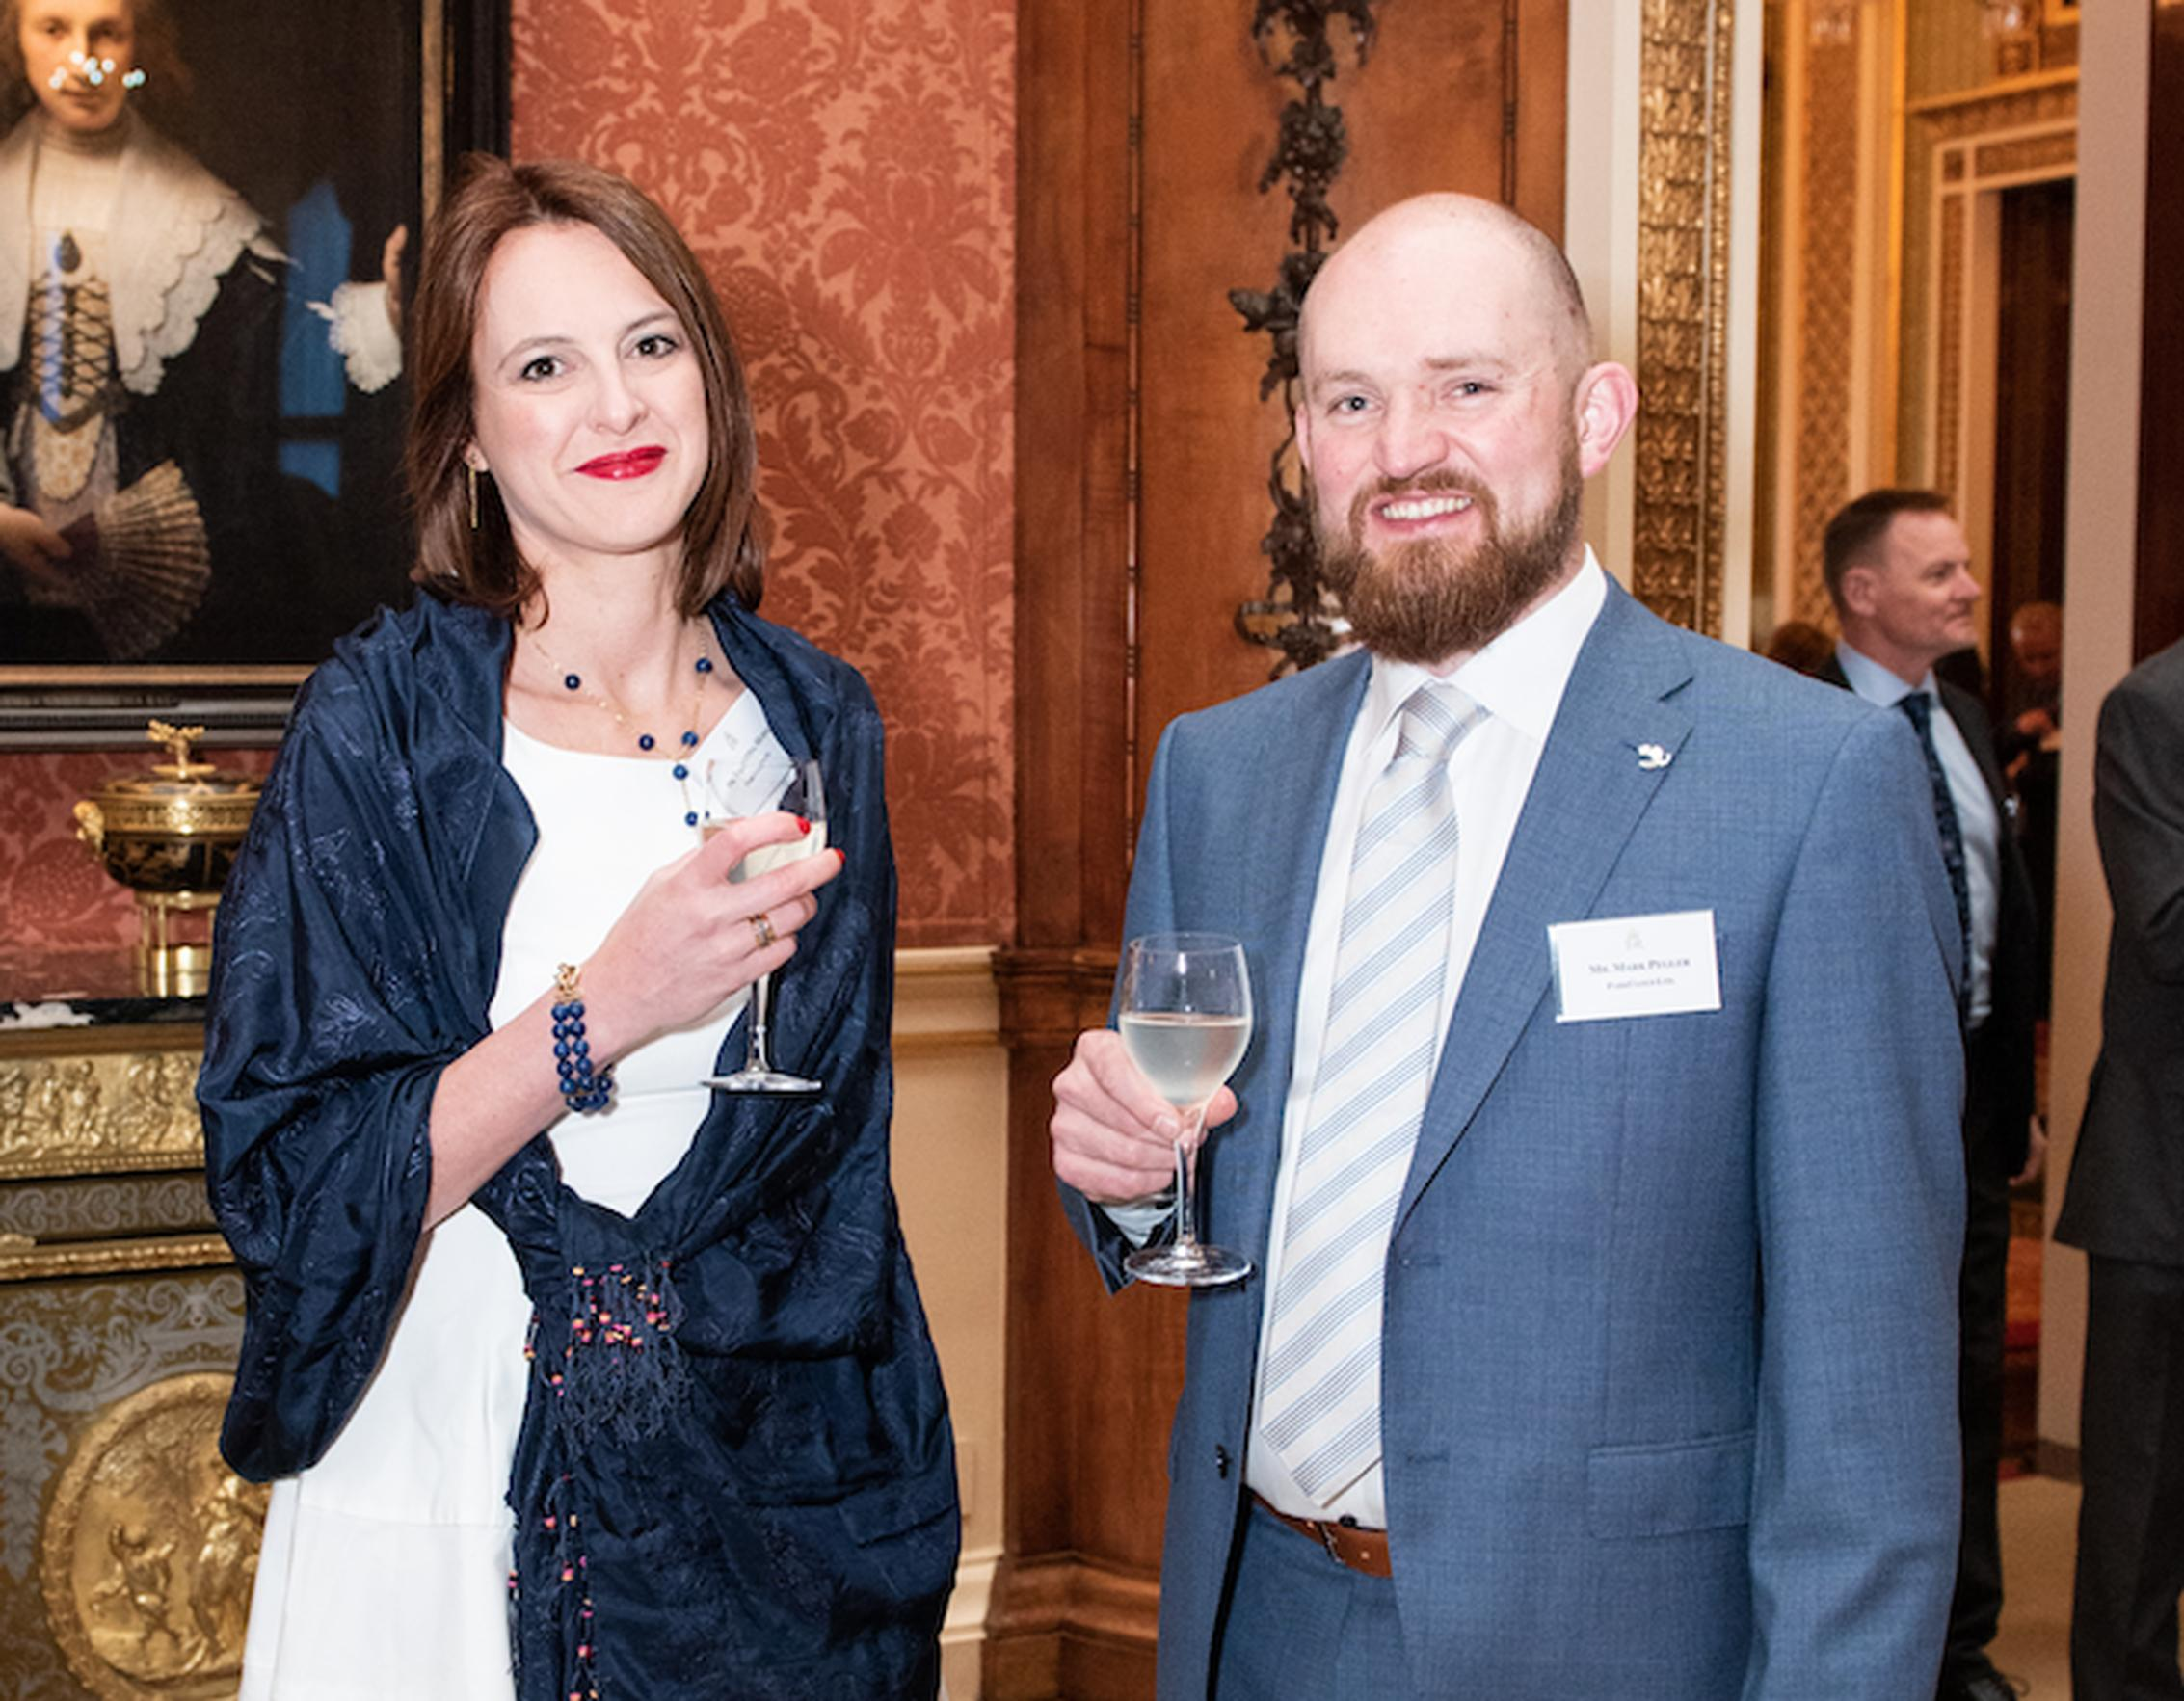 Dr Valentina Moise and Mark Pegler attending the Queen's Award for Enterprise reception at Buckingham Palace